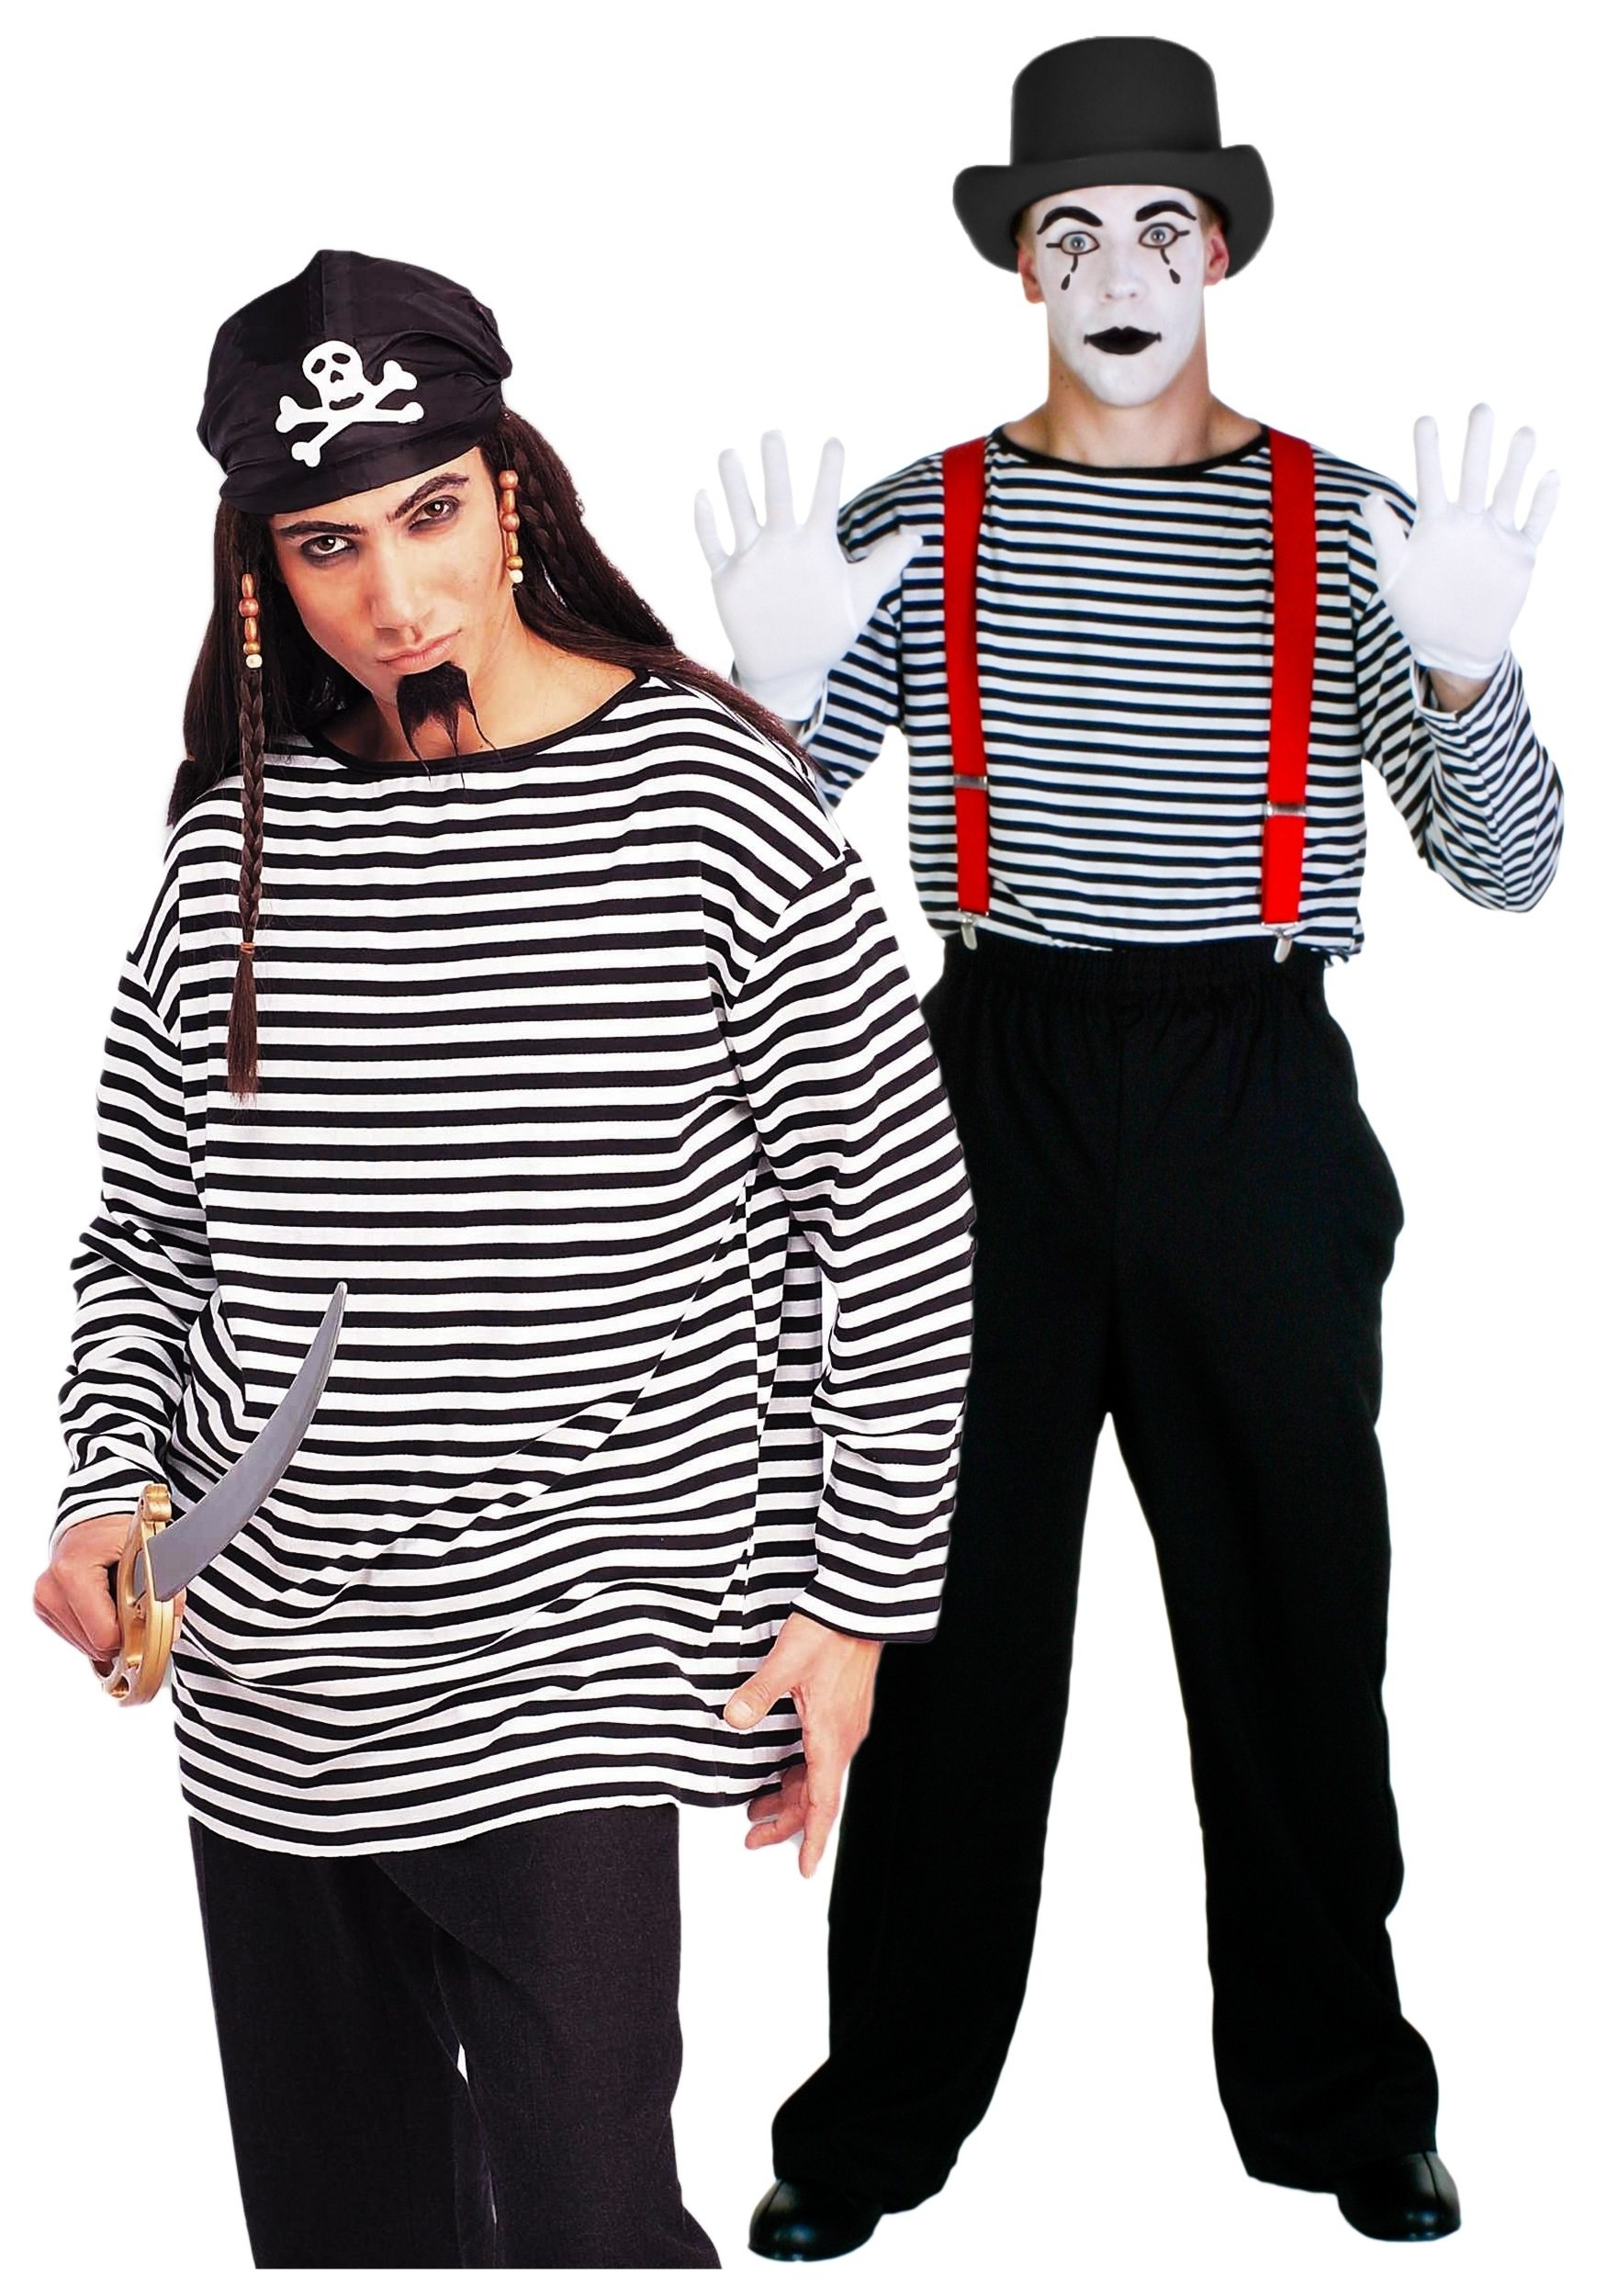 10 Best Black And White Costume Ideas black and white striped costume shirt mens prisoner costume ideas